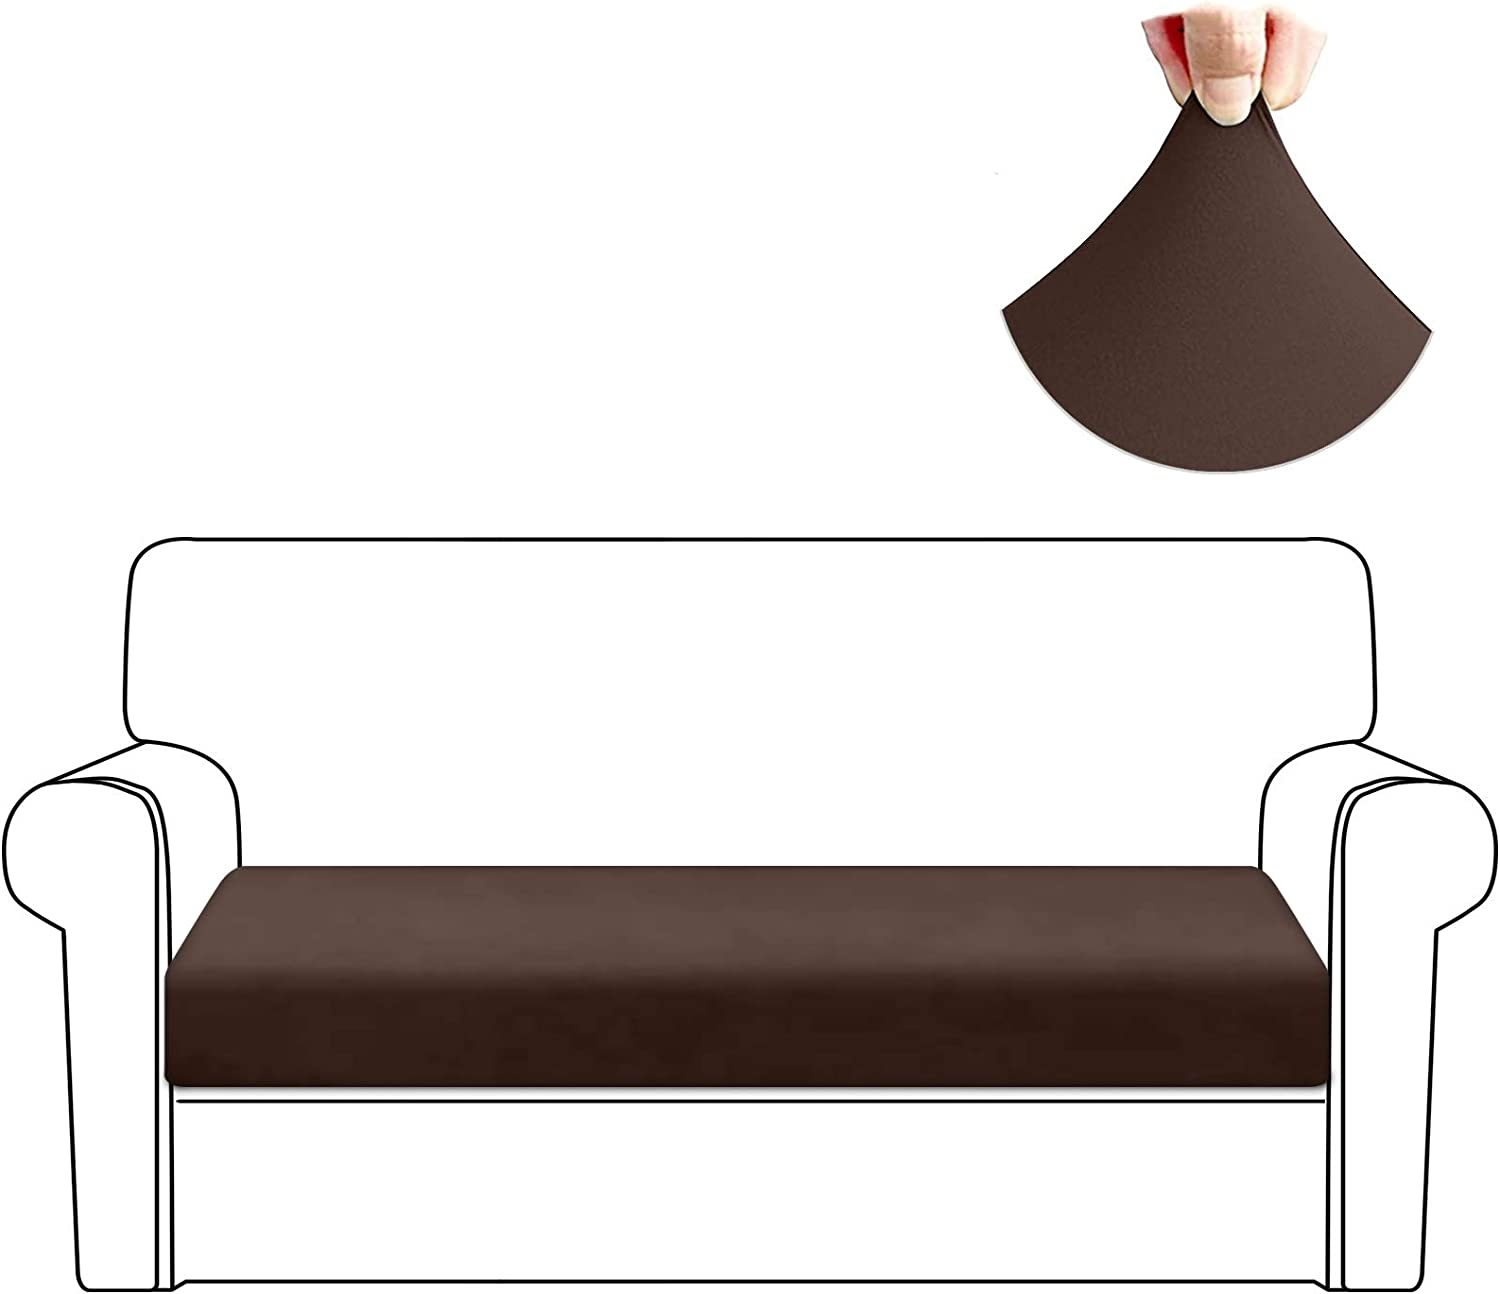 HDCAXKJ Stretch Couch Cushion Covers Soft Spandex Sofa Seat Cover for Loveseat Sectional Sofa Slipcovers Living Room Non Slip Furniture Protector with Elastic Bottom and Straps (Medium, Coffee)